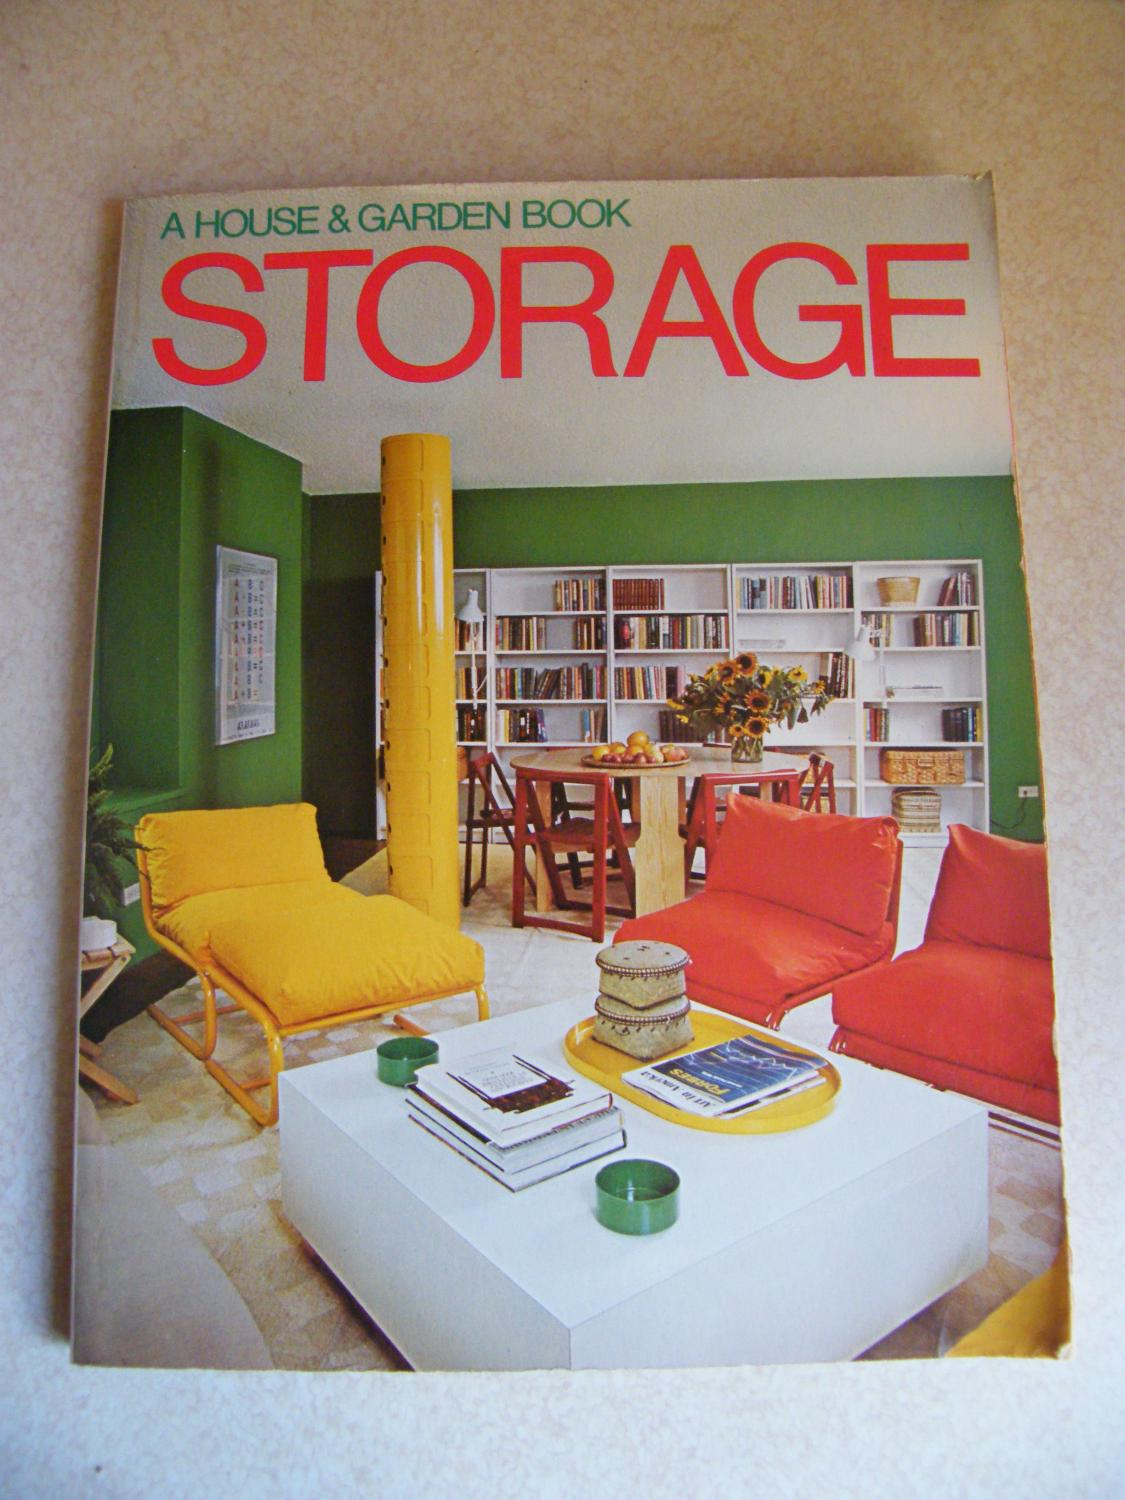 STORAGE: A House and Garden Book (1978)